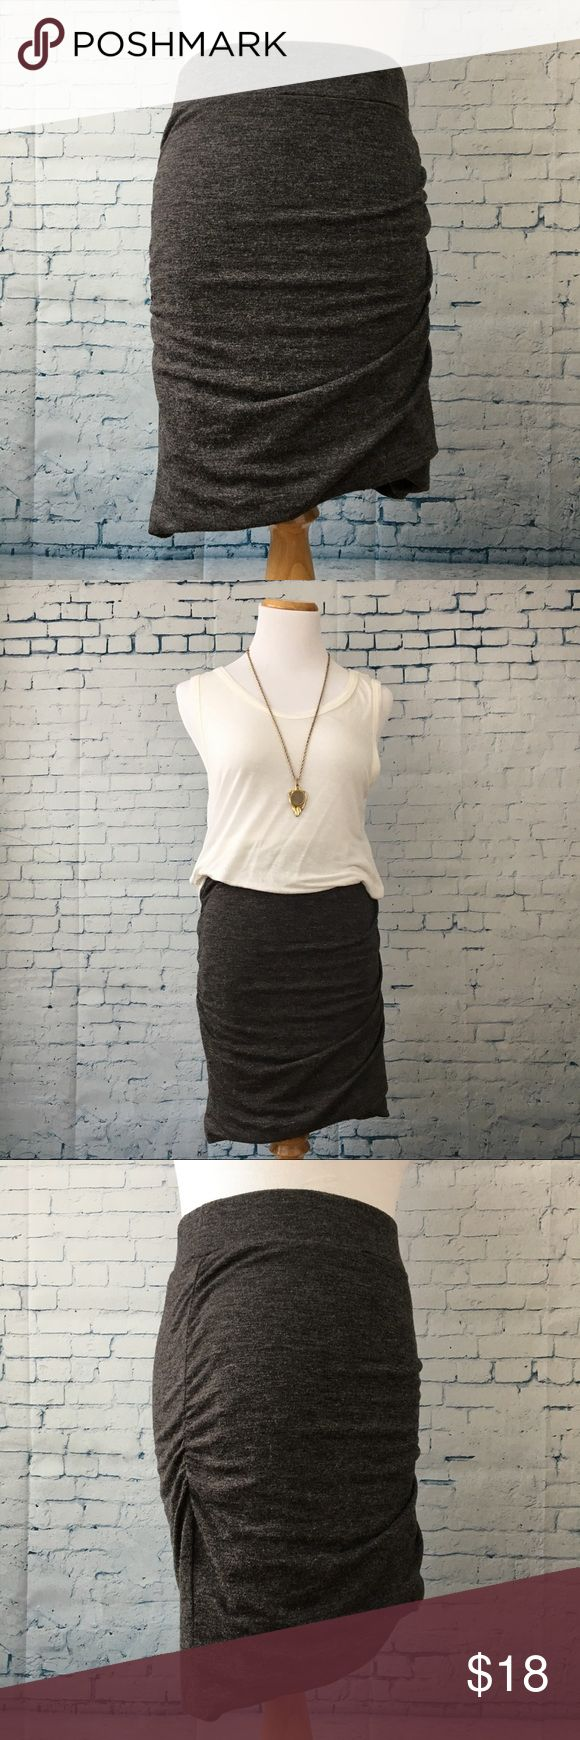 Banana Republic Ruched Jersey Skirt Very flattering. 95% viscose, 5% spandex. Lining is polyester. Dark charcoal- super cute with denim jacket and tshirt, dressed up for the office, or with tights and boots for the fall. Great used condition. Banana Republic Skirts